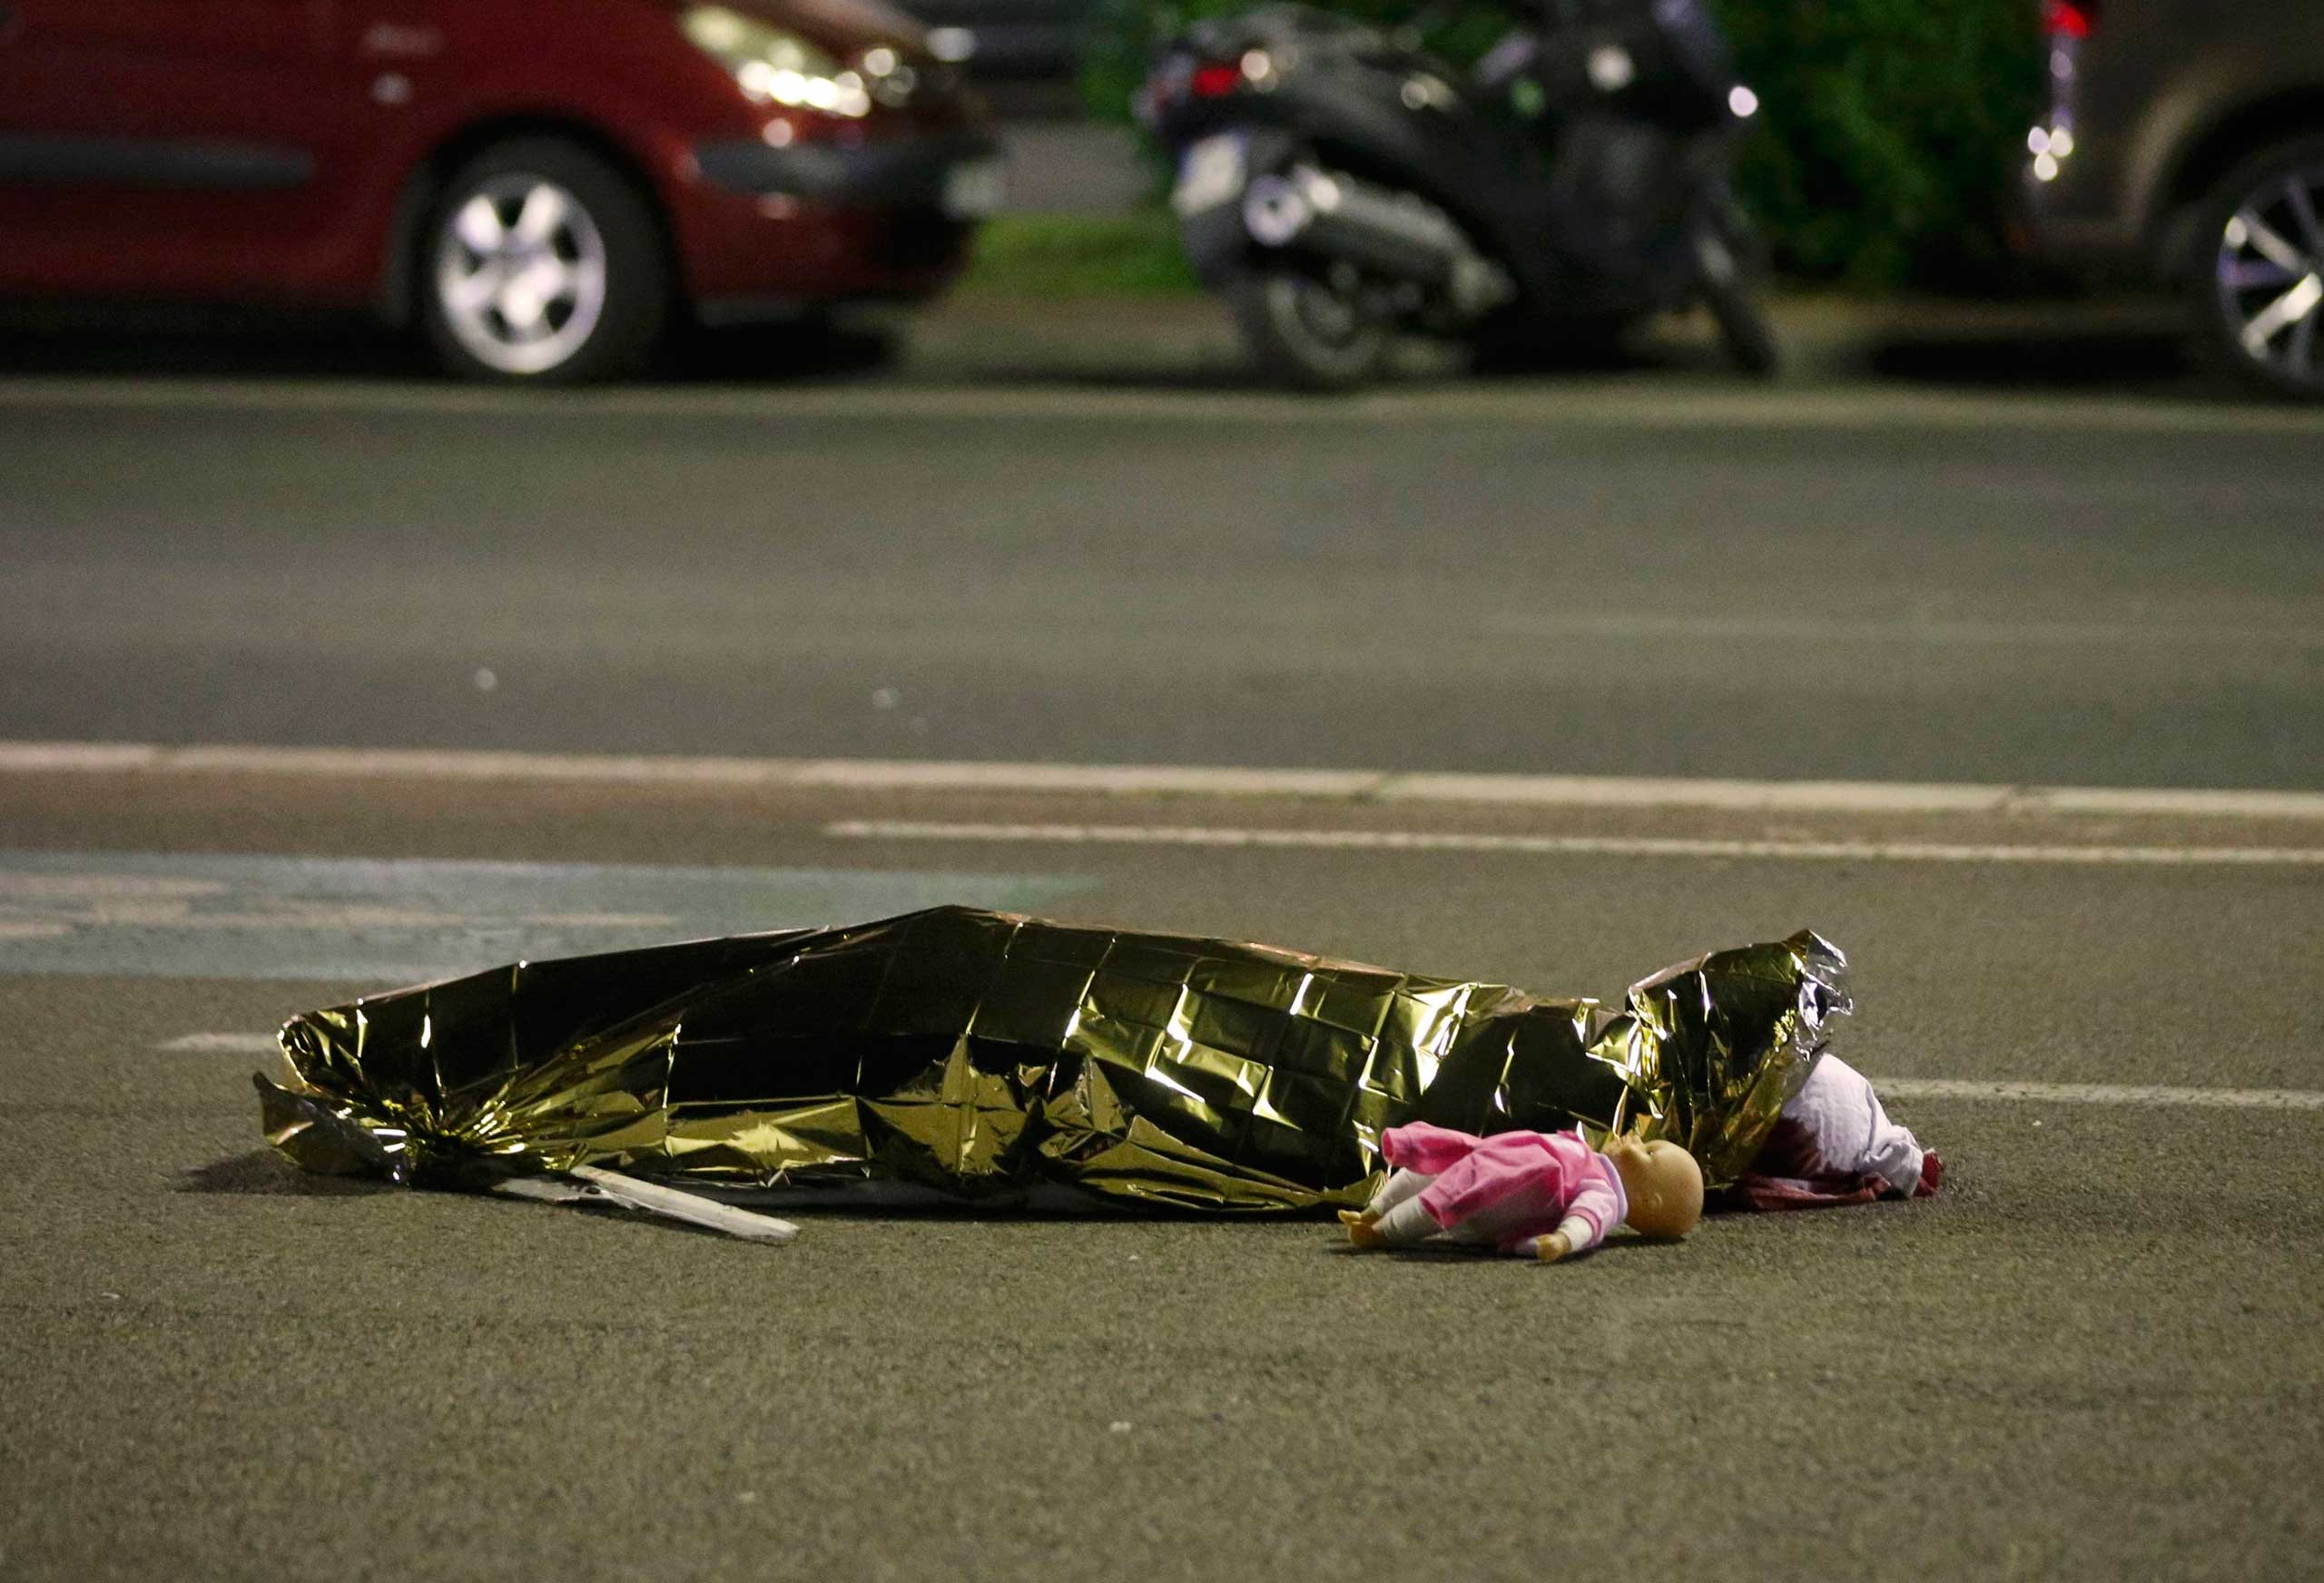 A body is seen on the ground July 15, 2016 after at least 84 people were killed in Nice, France, when a truck ran into a crowd celebrating the Bastille Day national holiday.